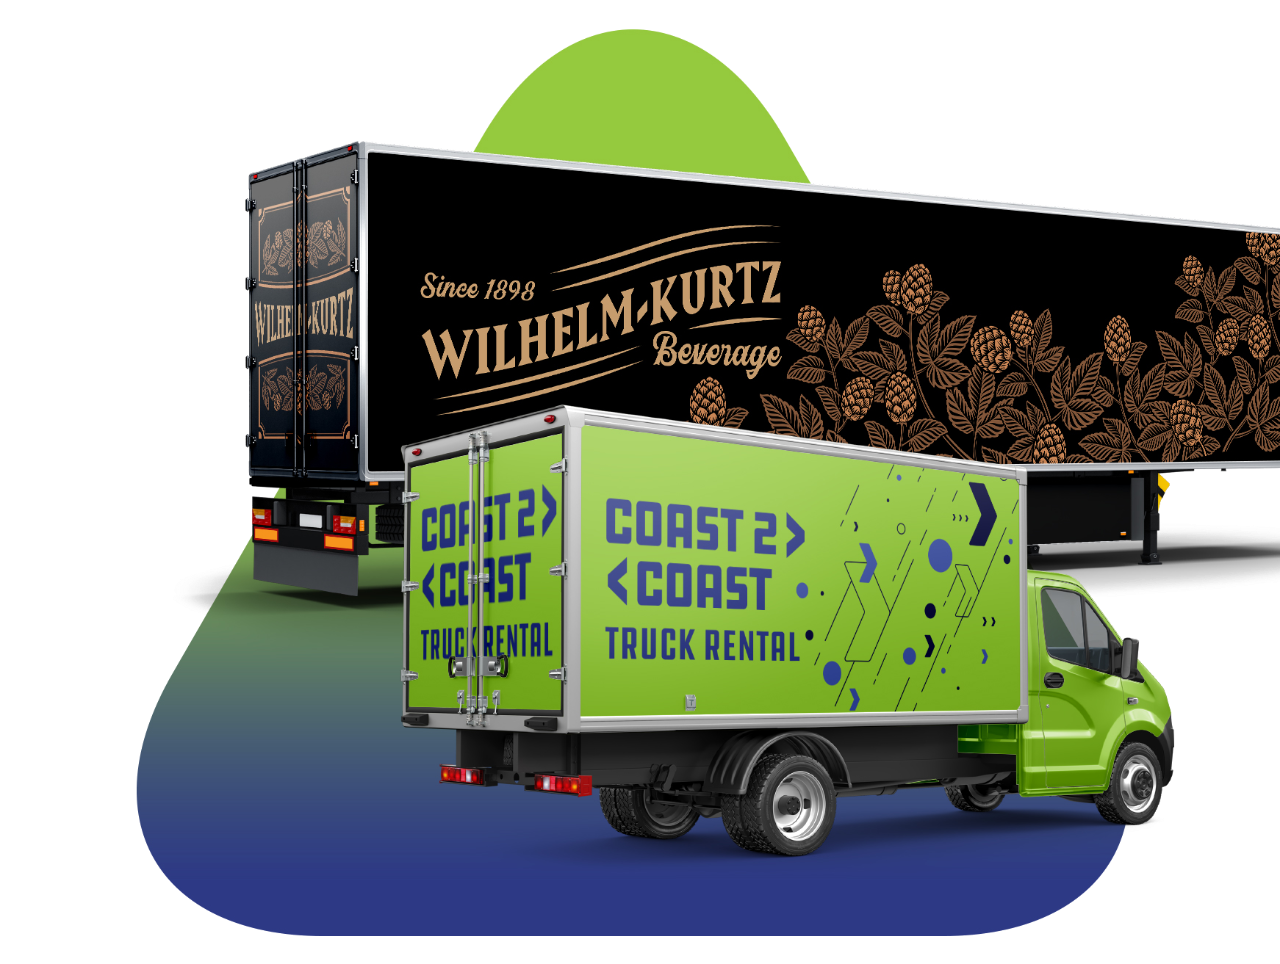 2f6449a775 Create a vibrant and lasting first impression with fleet graphics from  Avery Dennison. Our industry leading fleet wraps are easy to install